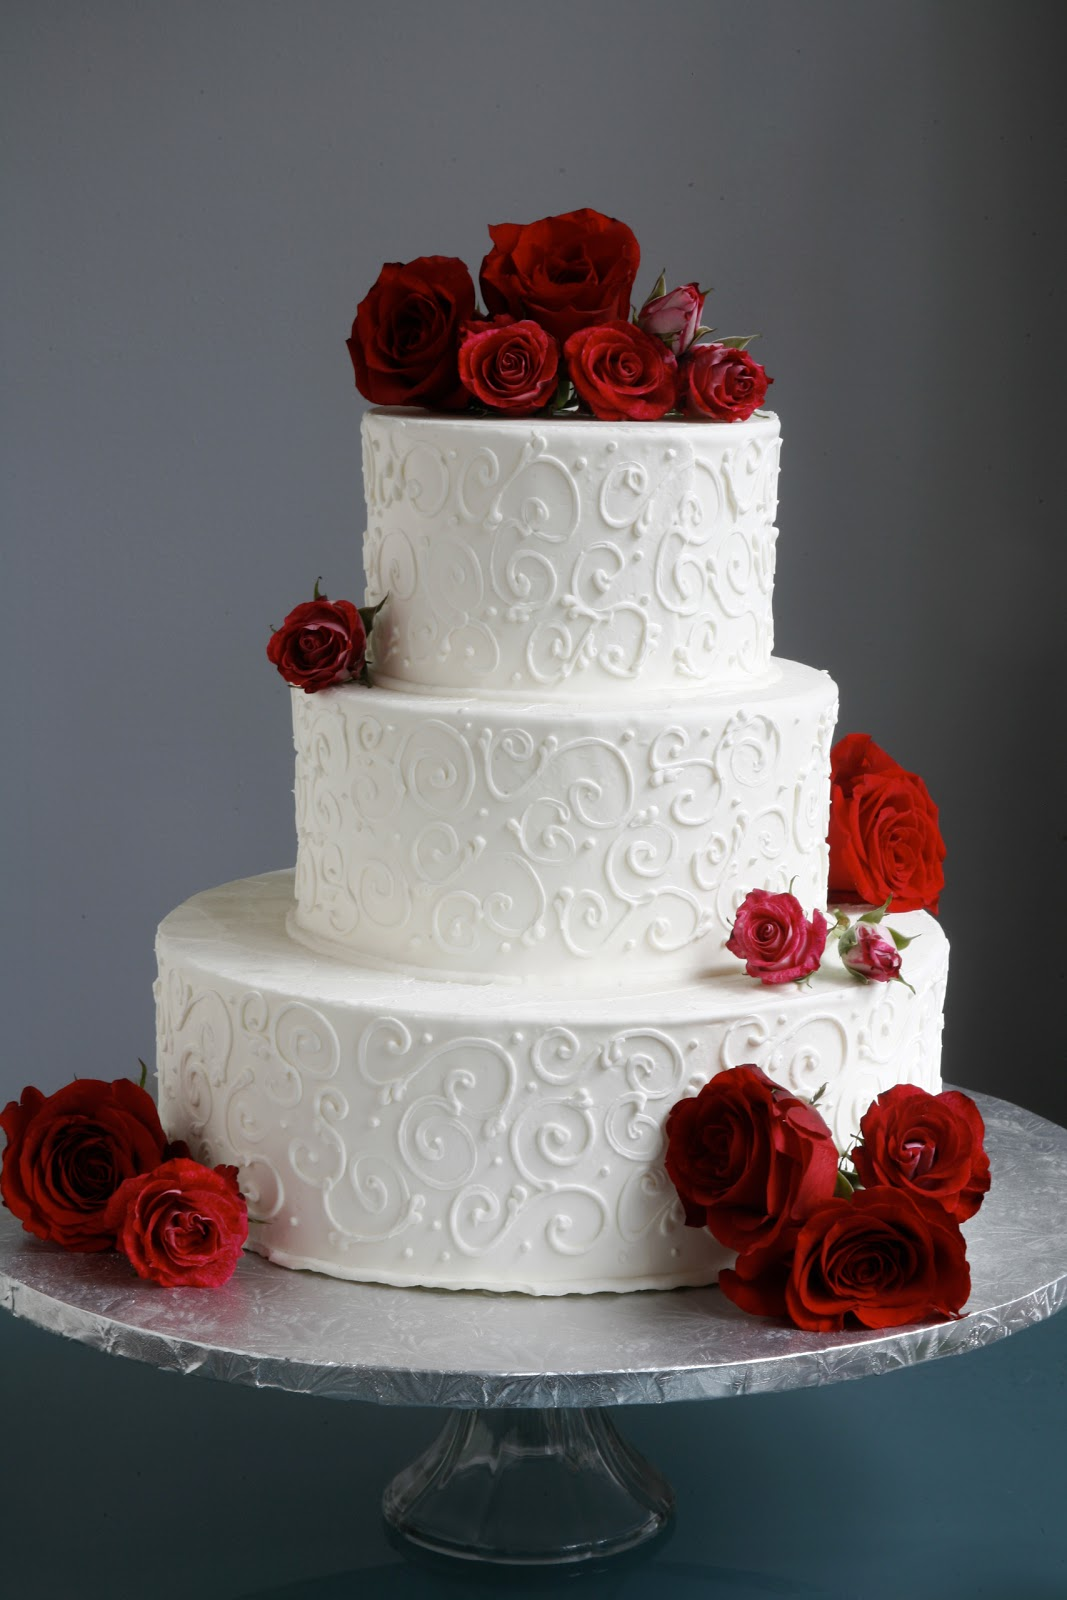 a simple cake wedding cake with fresh flowers from trader joe 39 s. Black Bedroom Furniture Sets. Home Design Ideas